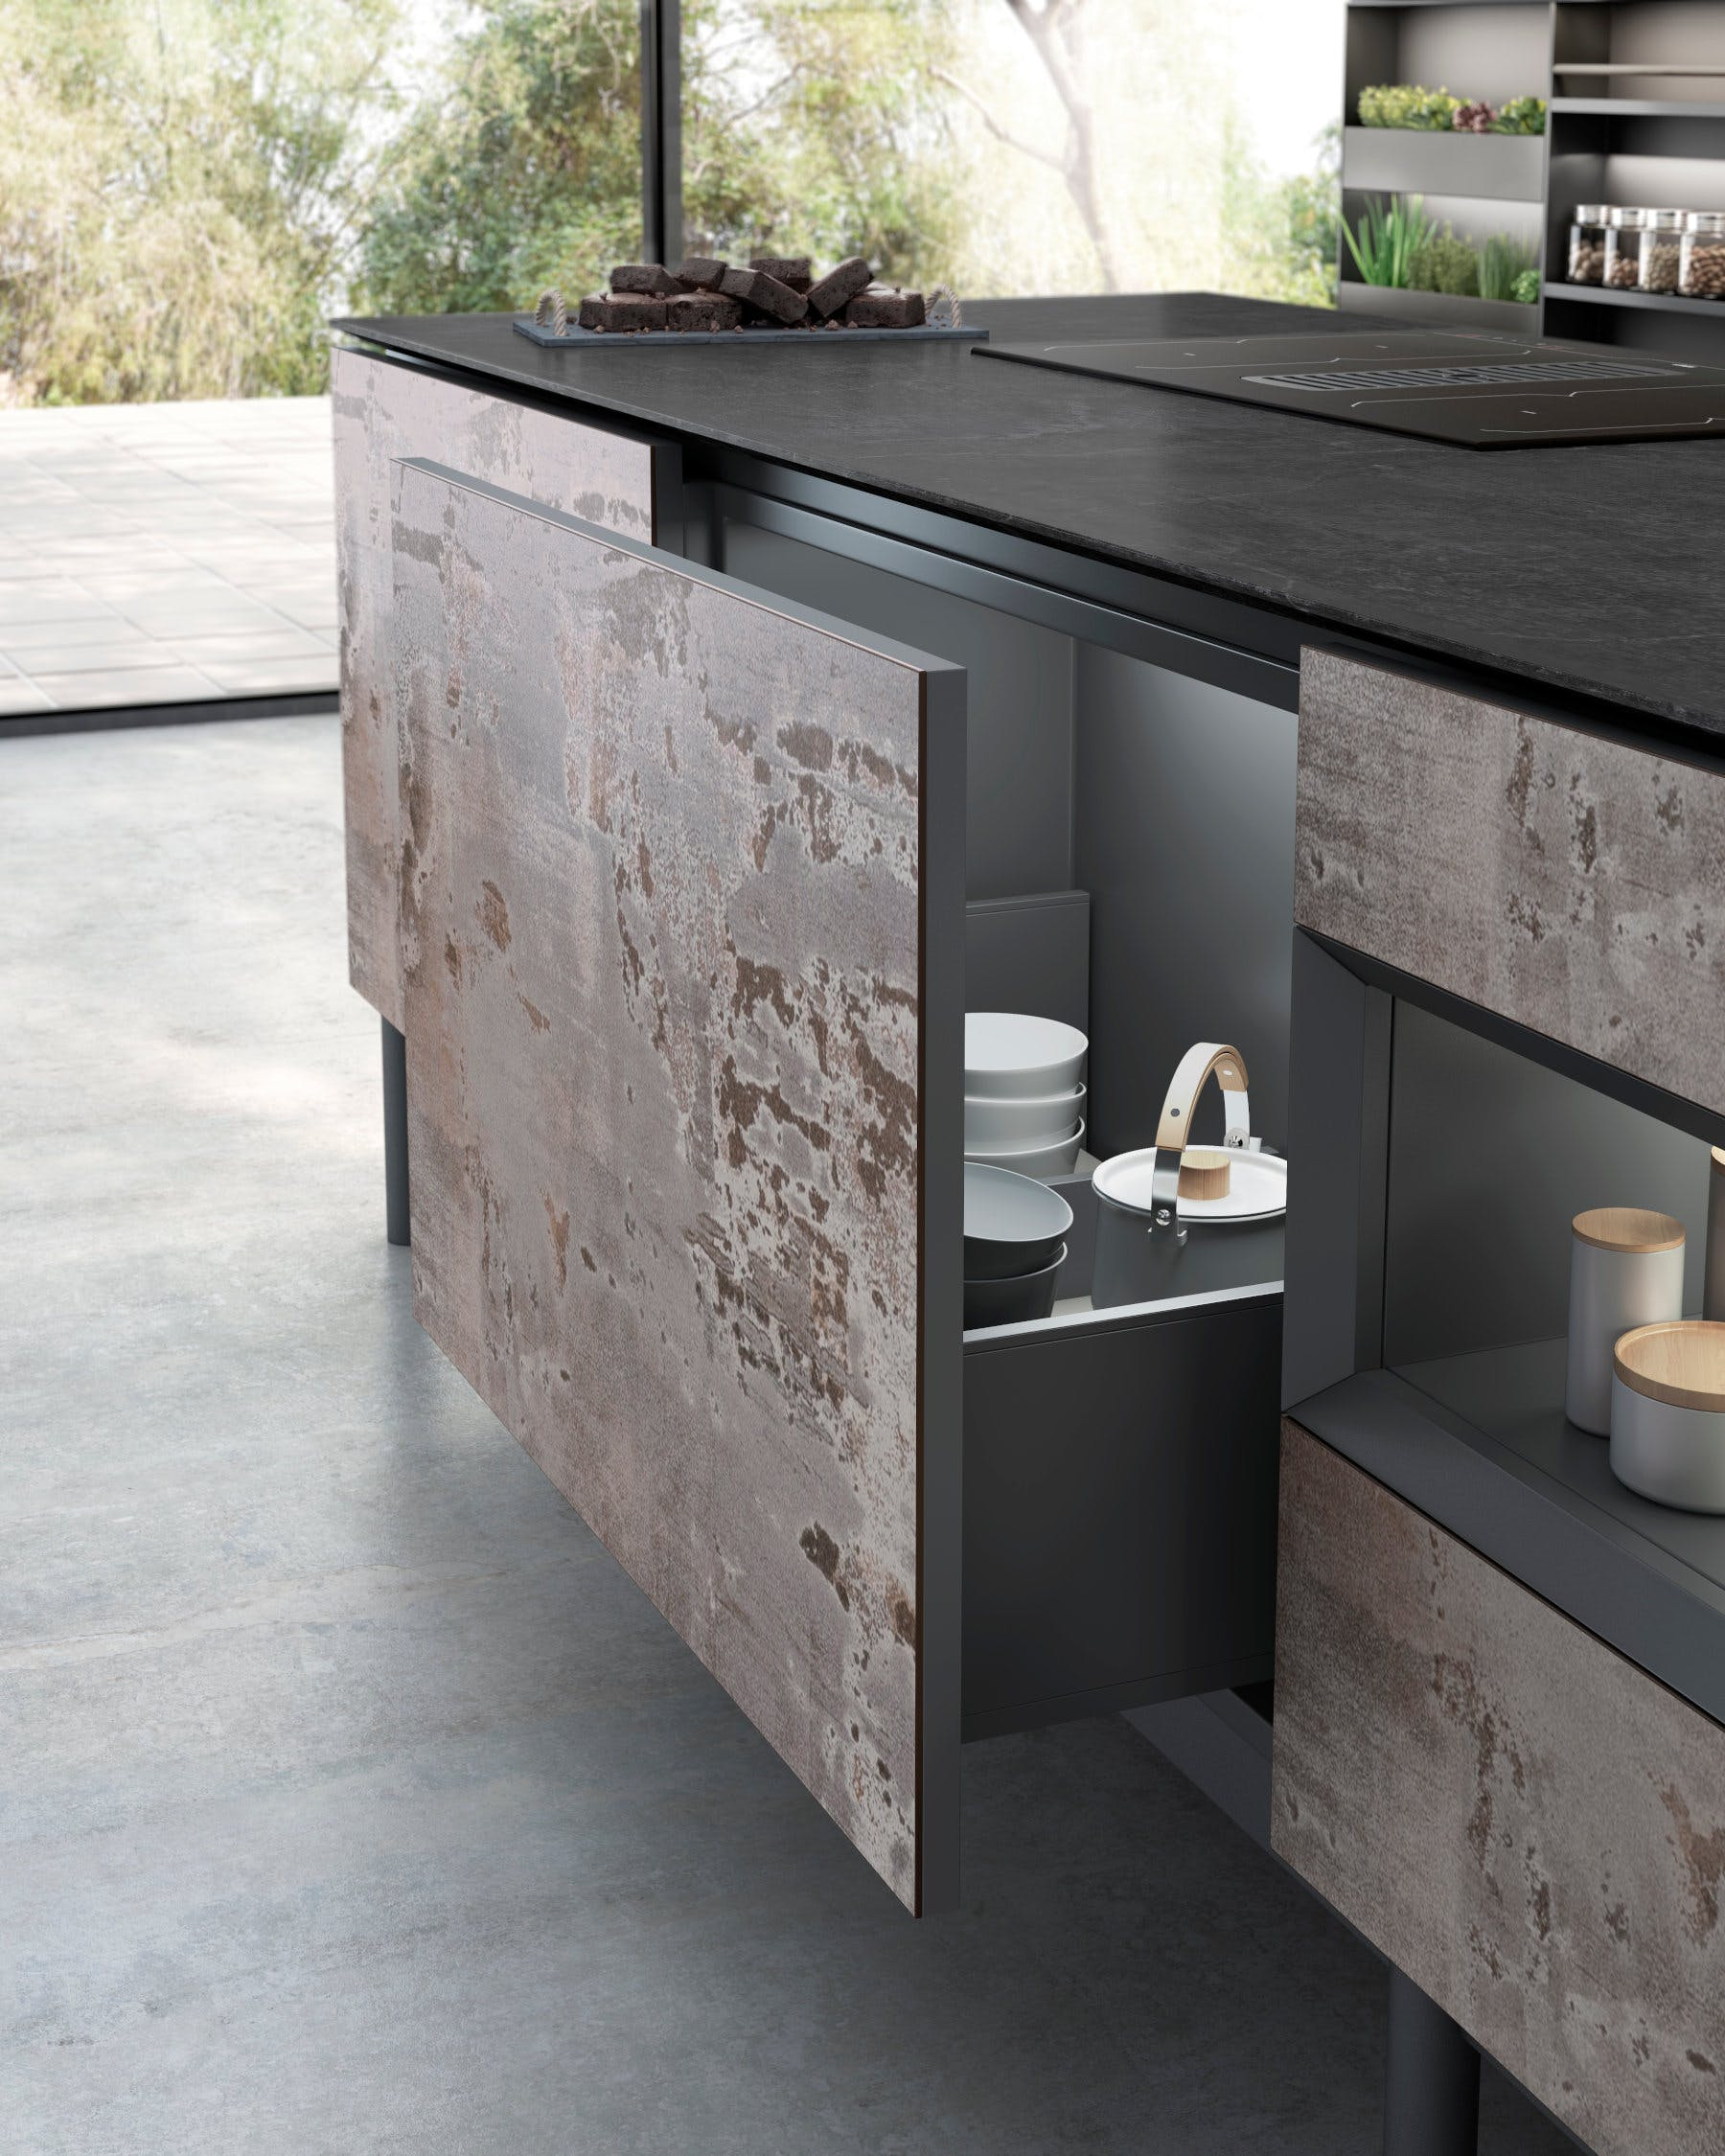 Image of Dekton Kitchen Trilium Detalle 1 1 in How to organise your kitchen and keep it that way - Cosentino